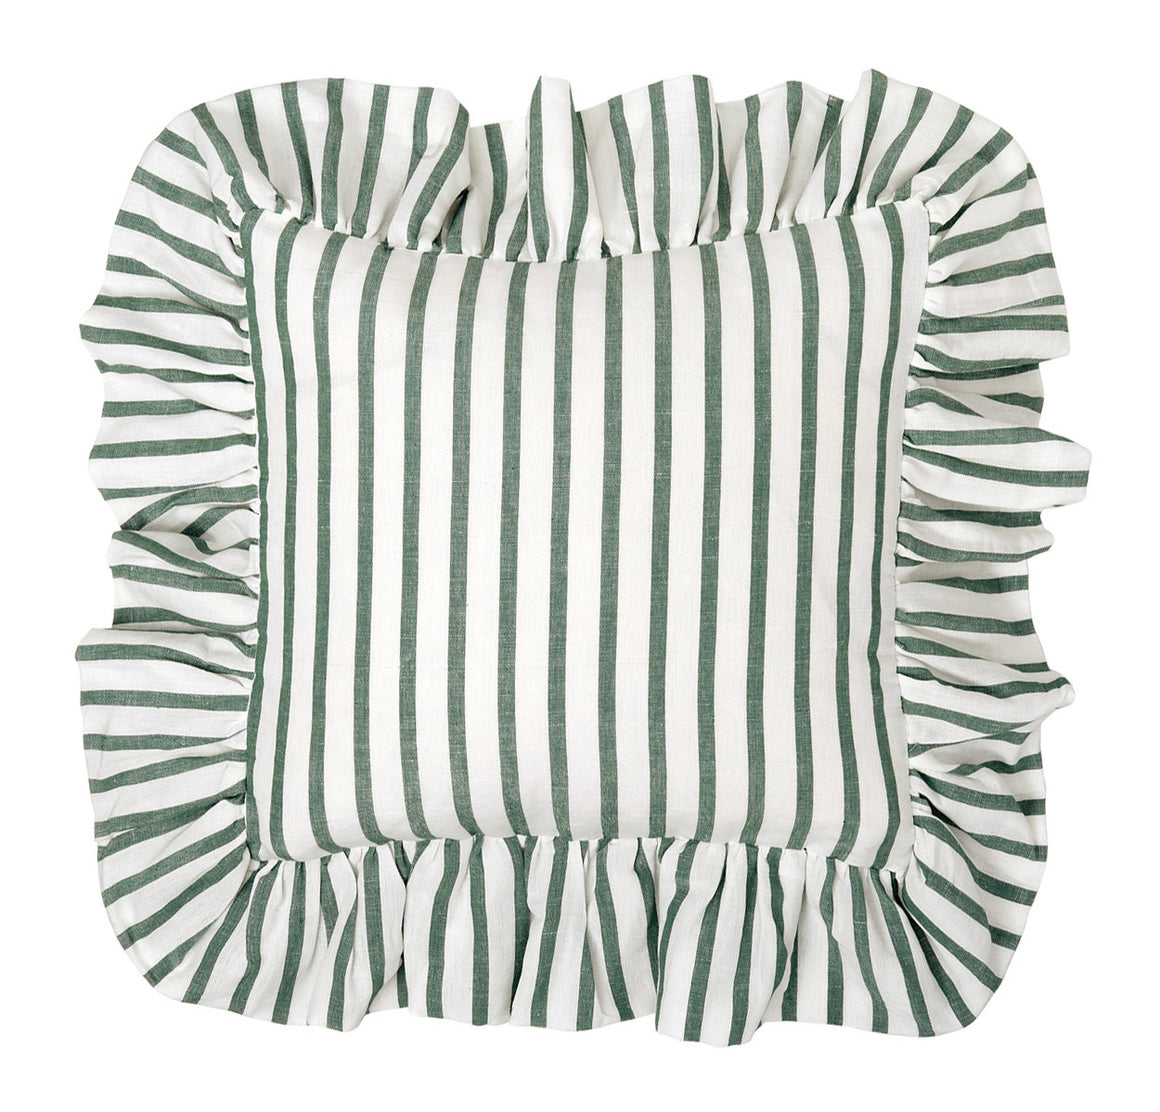 Autumn Ticking Stripe Ruffle Cushion in Dark Moss Green 45x45cm